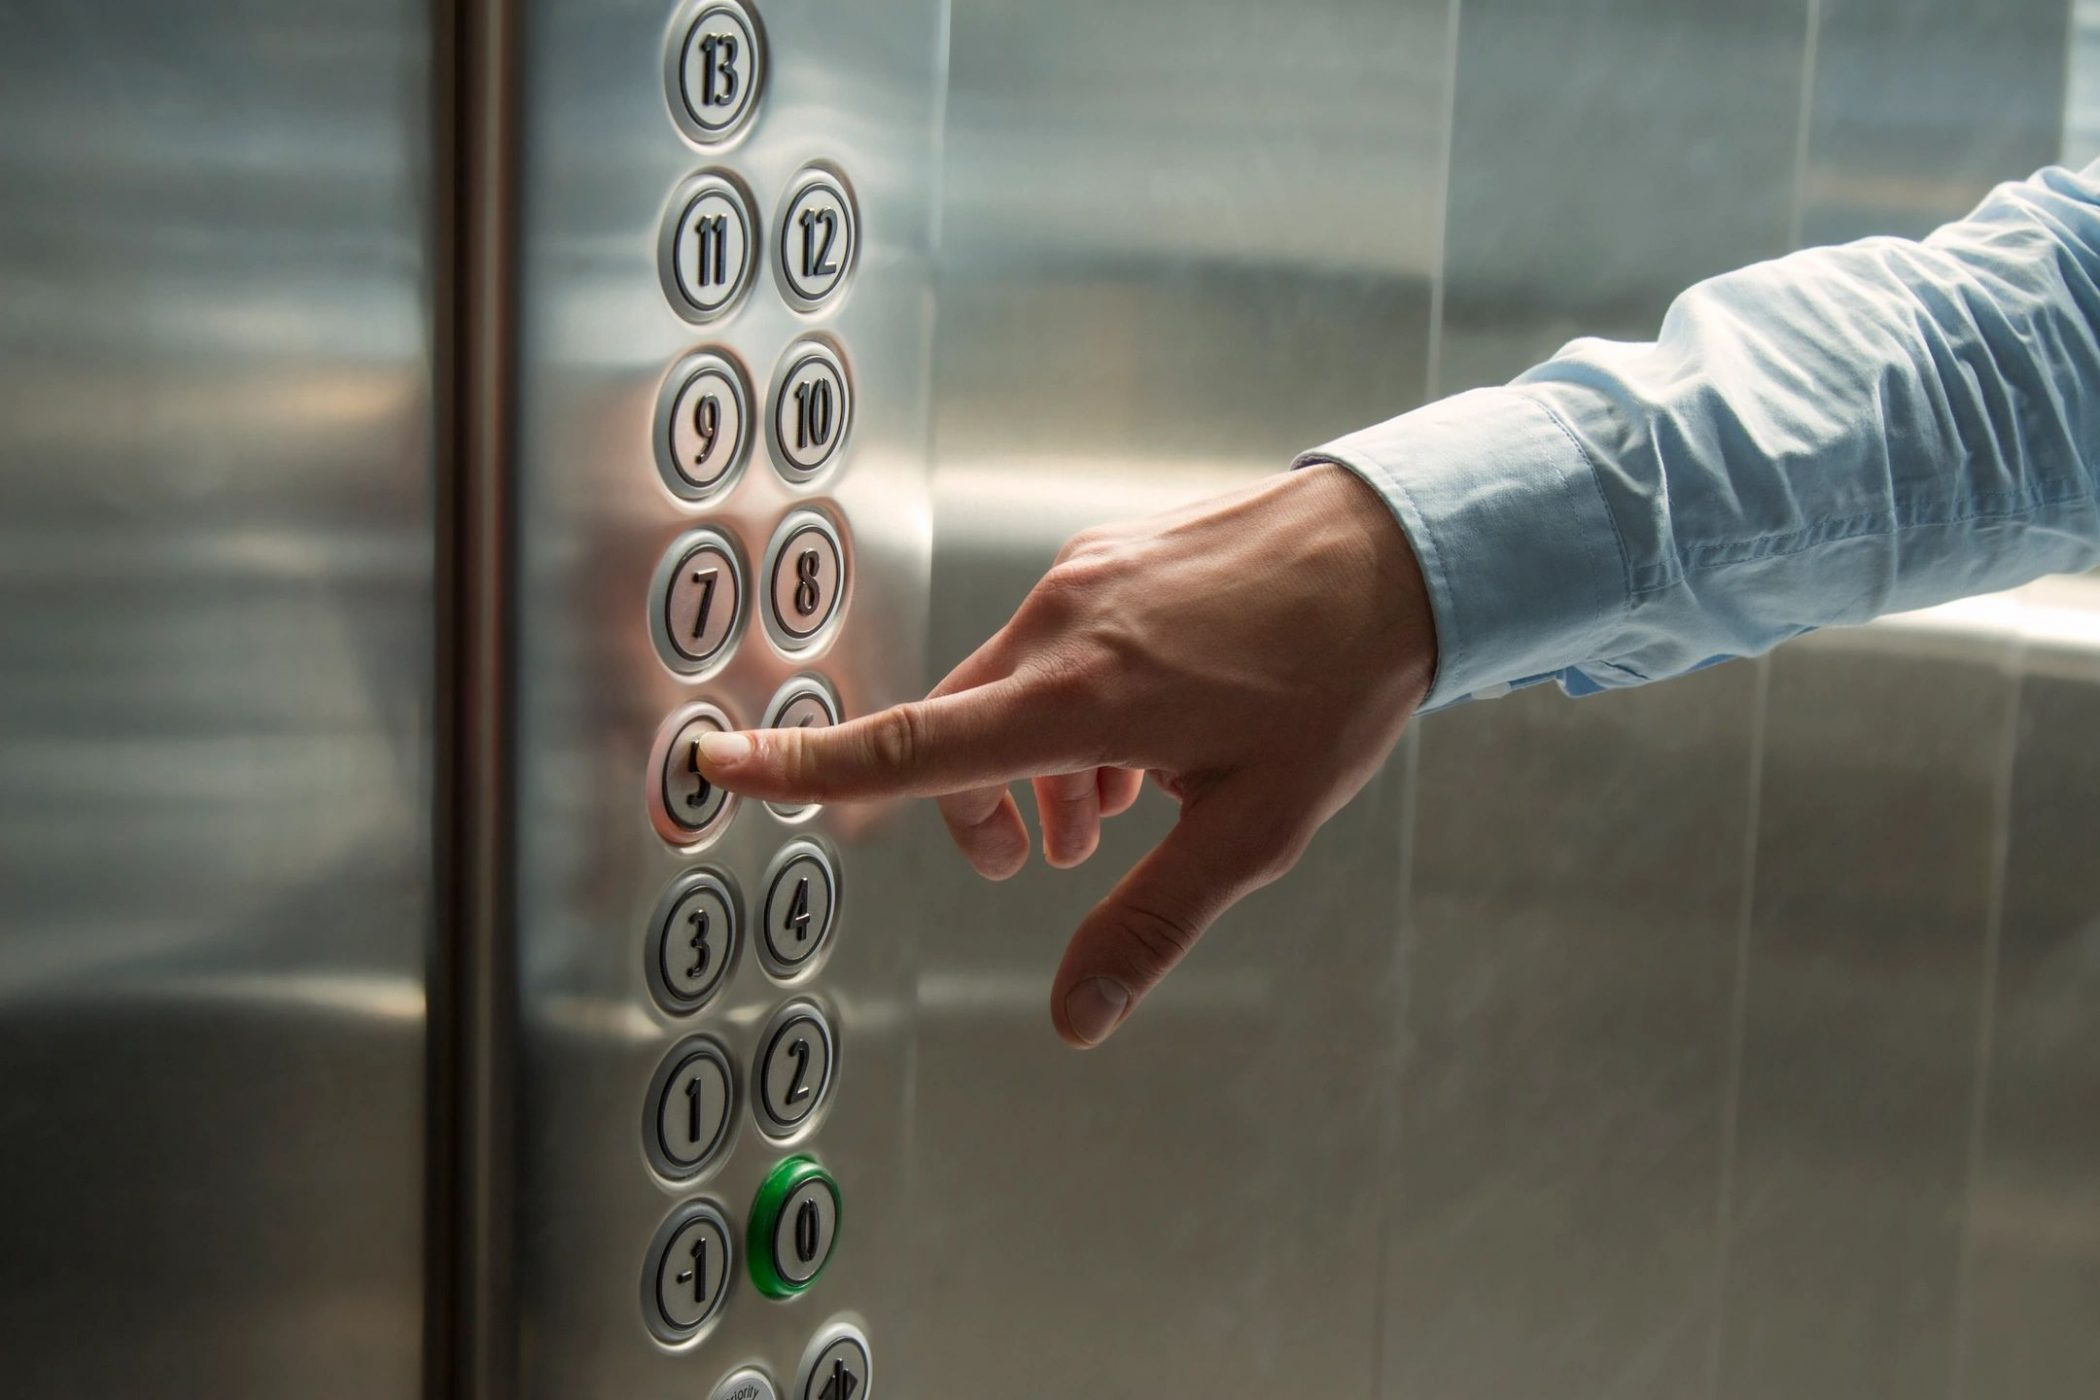 Elevator man similar to that in story by DC widow blog writer Marjorie Brimley